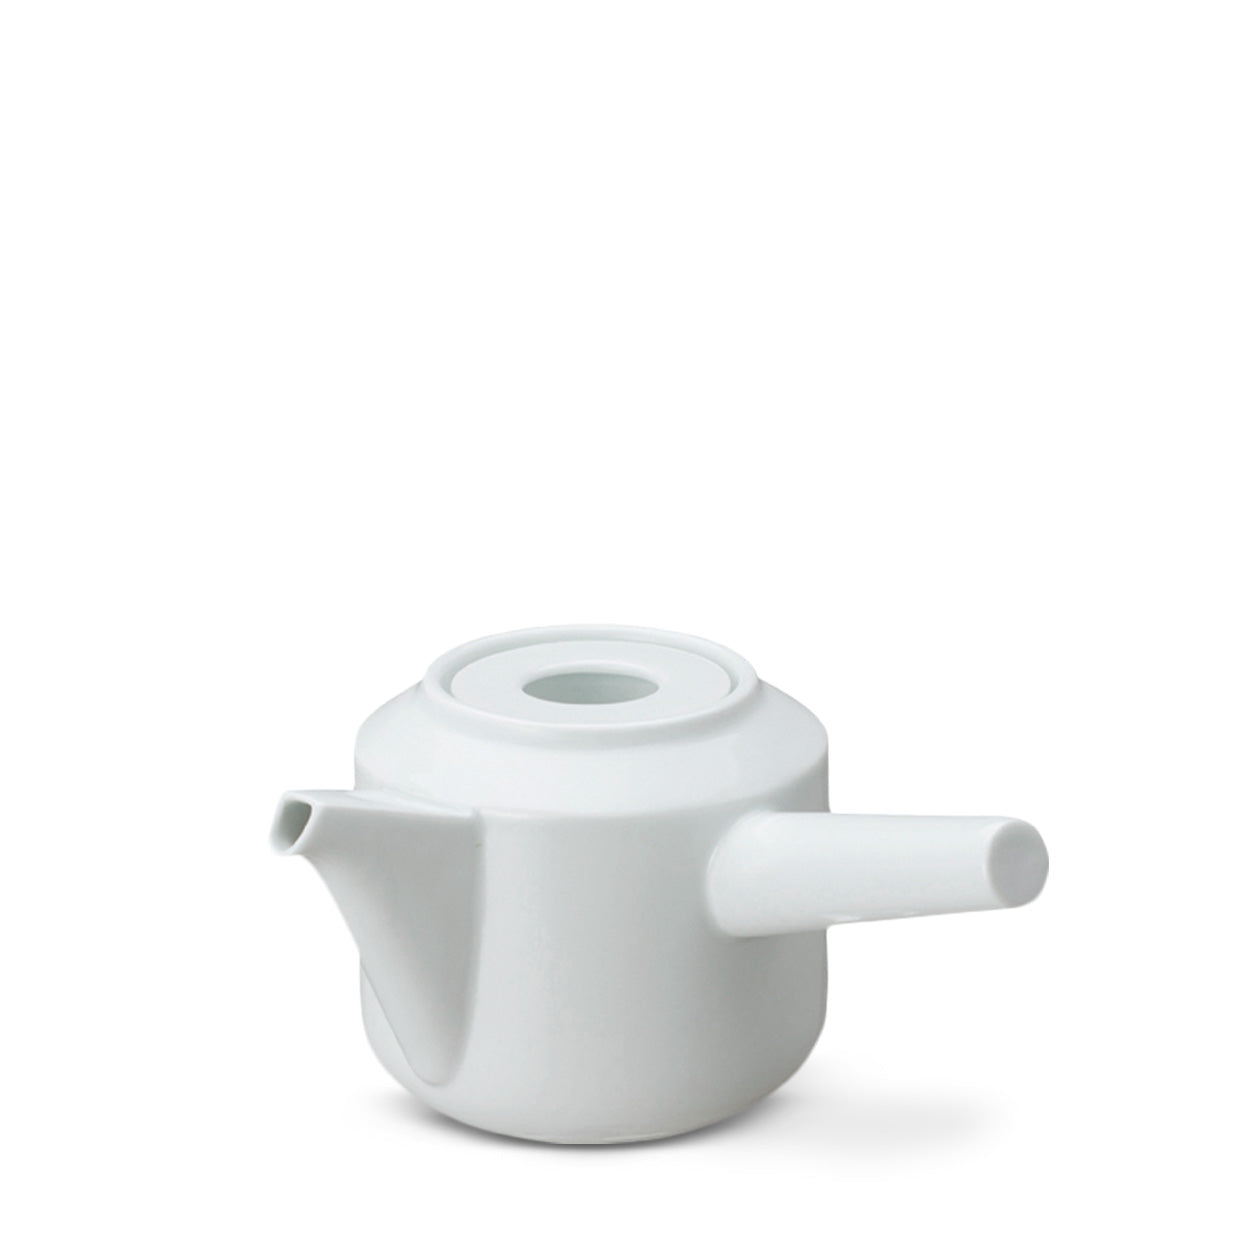 Leaves to tea kyusu teapot white